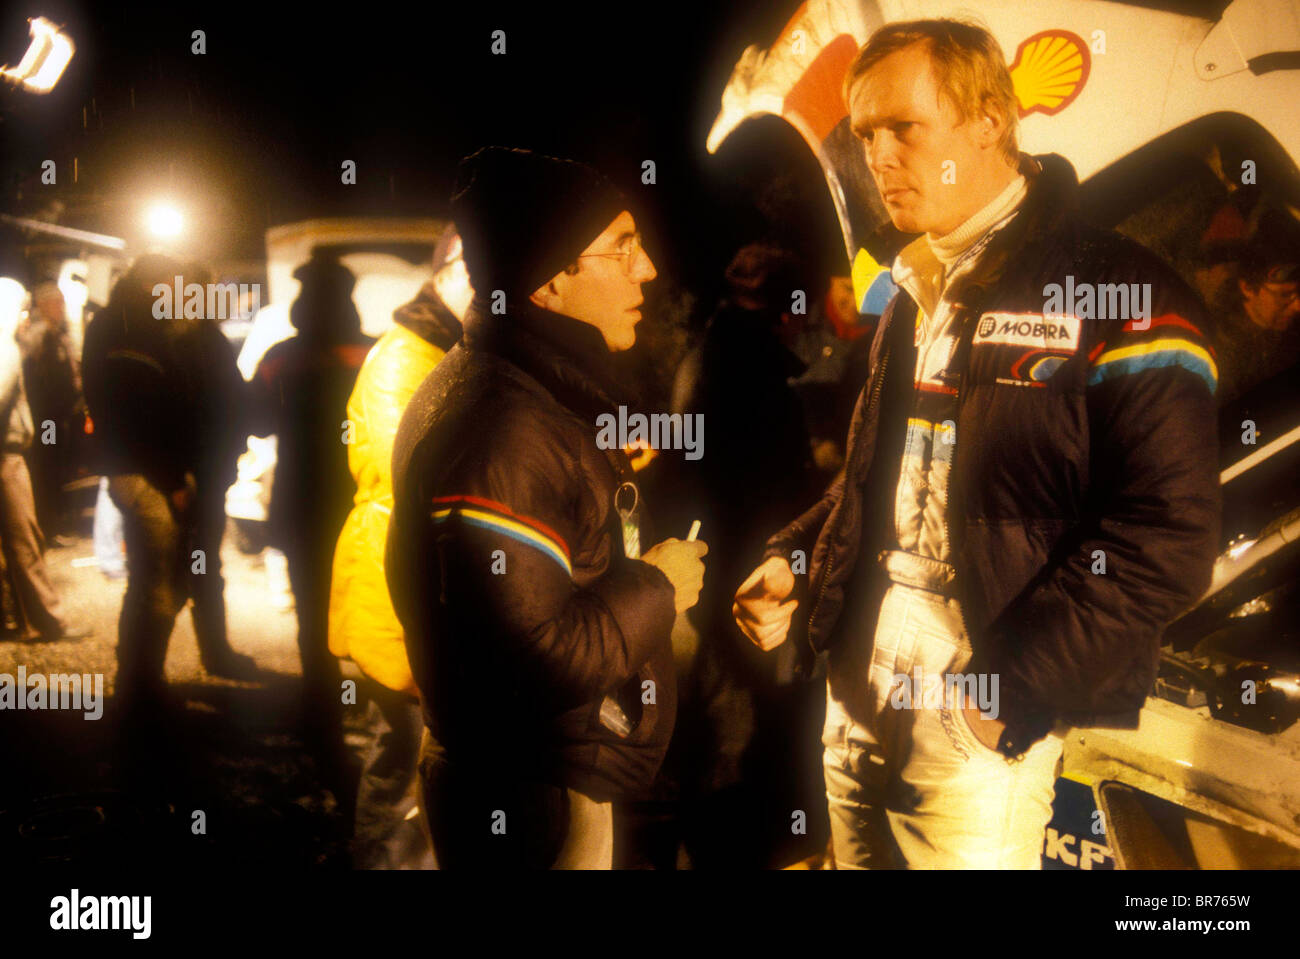 Ati Vatanen being interviewed at a service halt on 1985 Monte Carlo Rally - Stock Image